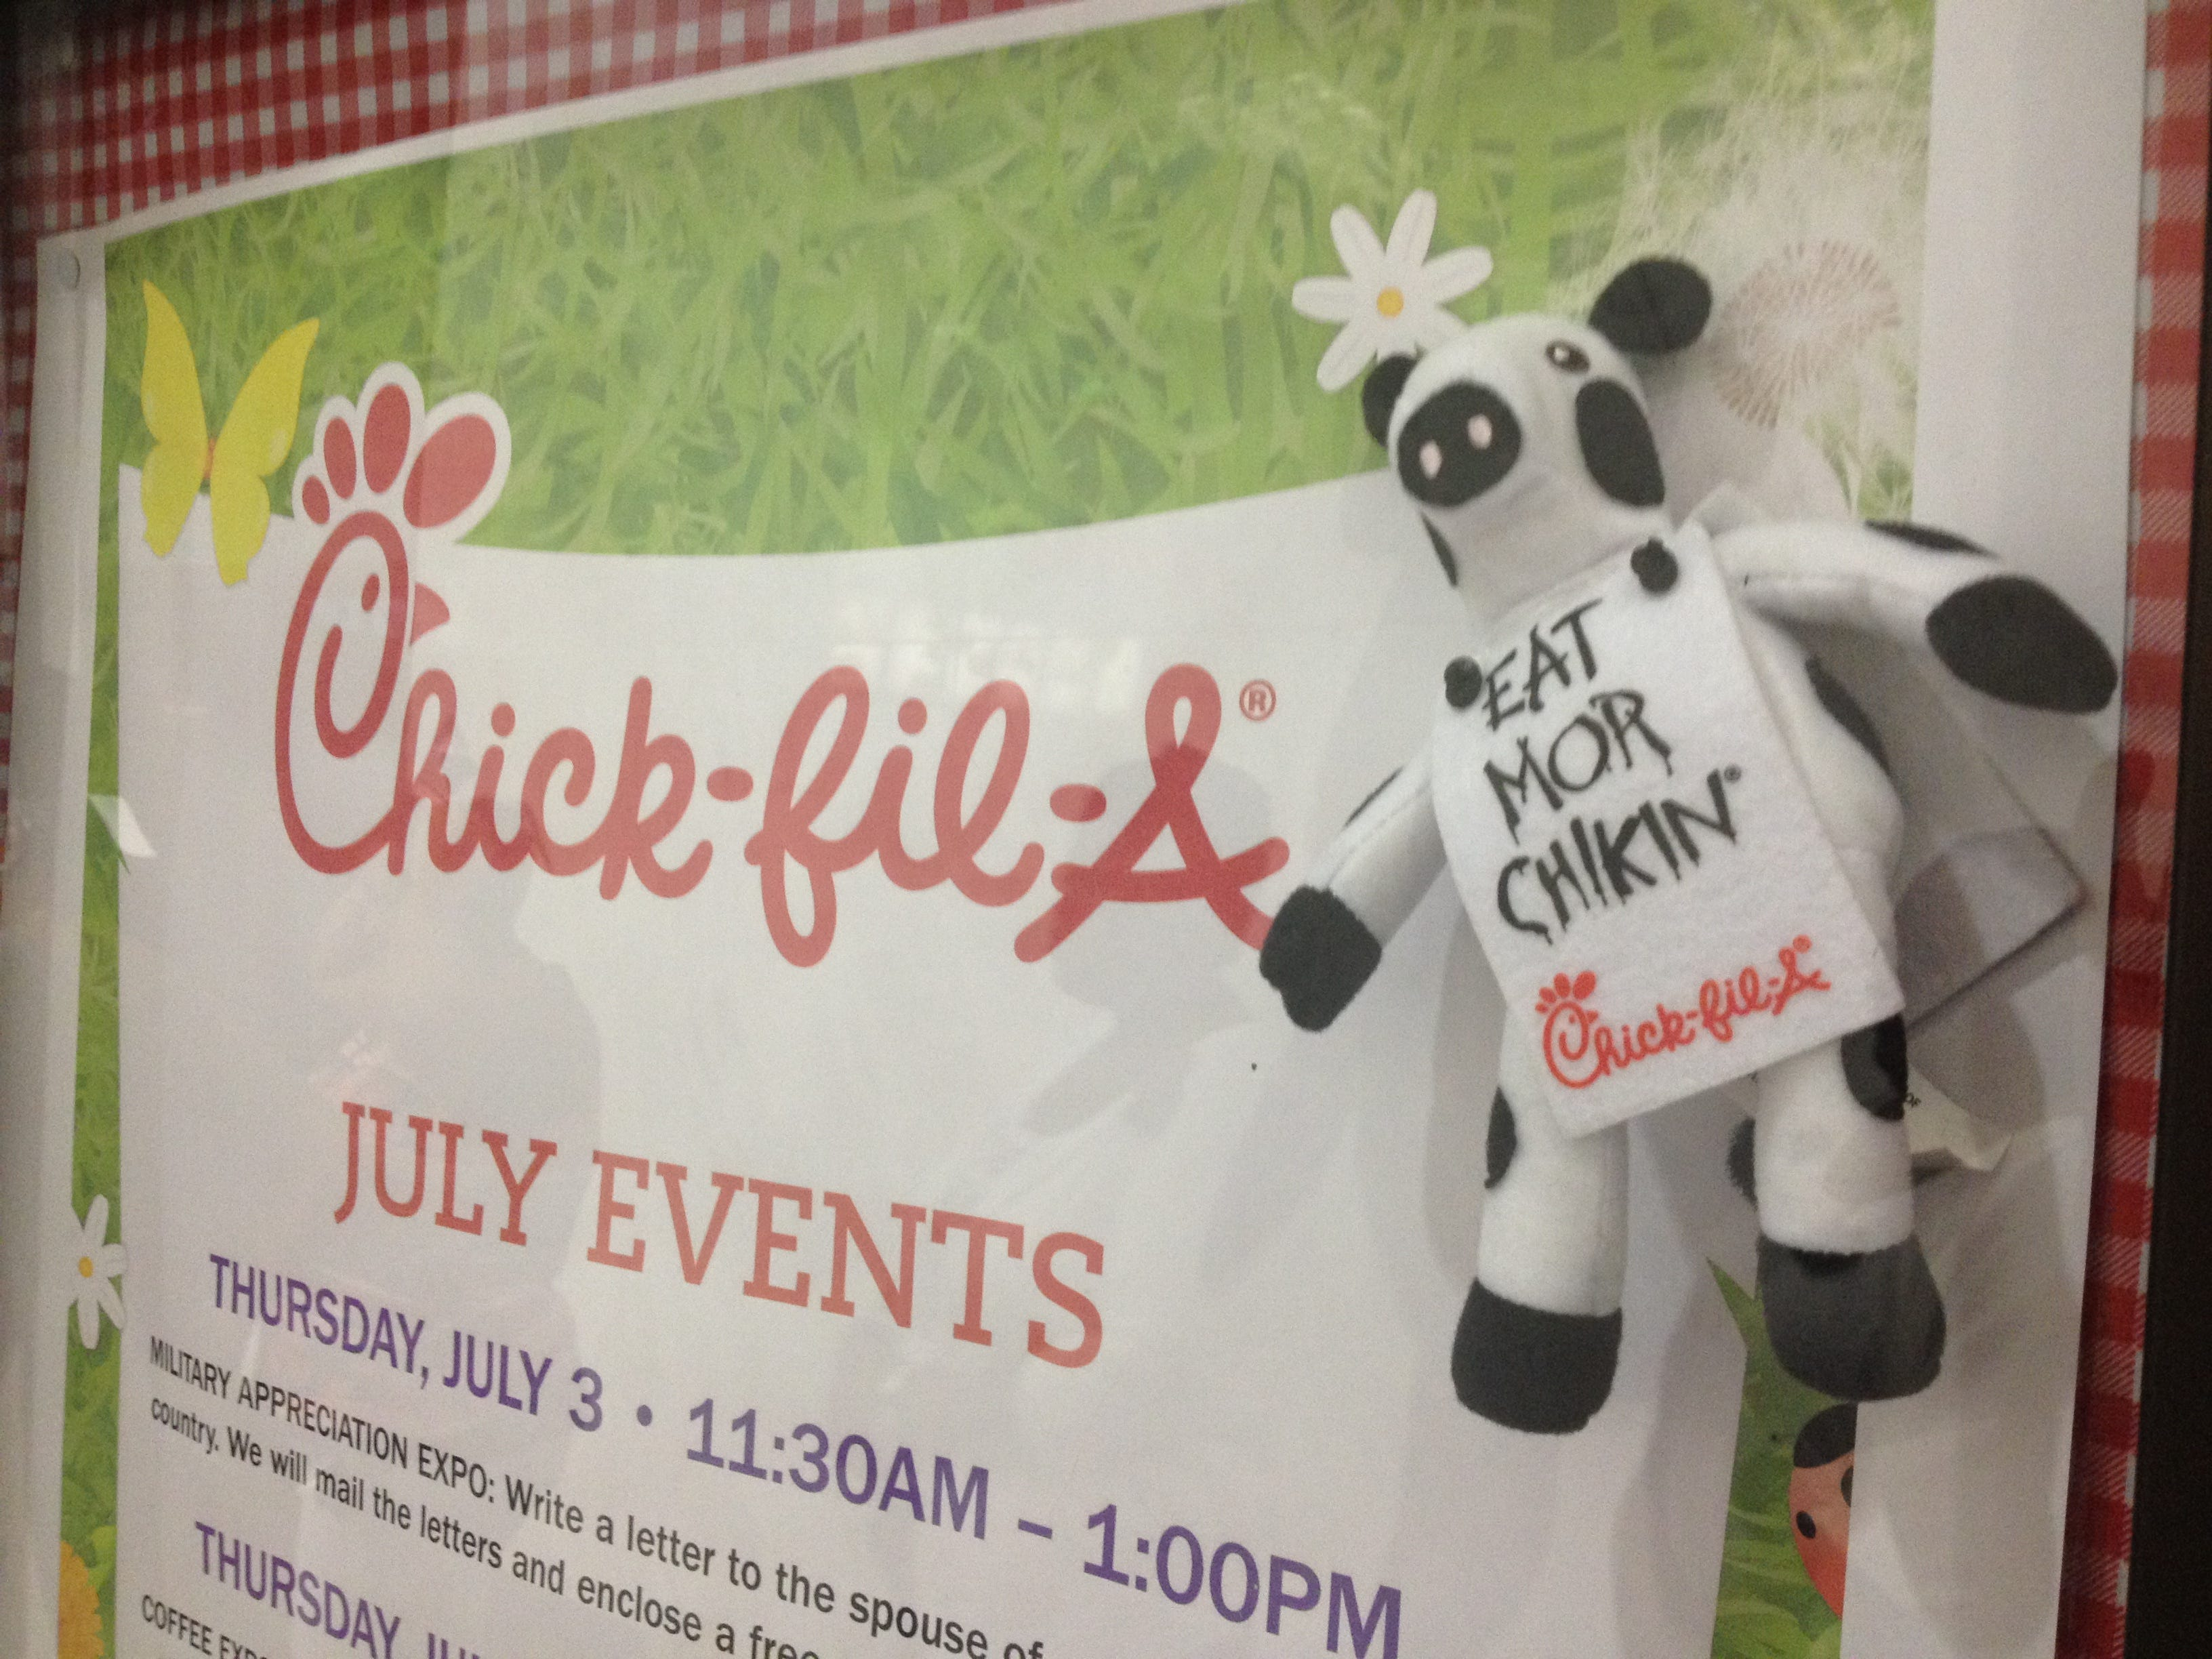 photograph relating to Chick Fil a Cow Appreciation Day Printable identified as Chick-fil-A Cow Appreciation Working day 2019: Where by towards receive a absolutely free